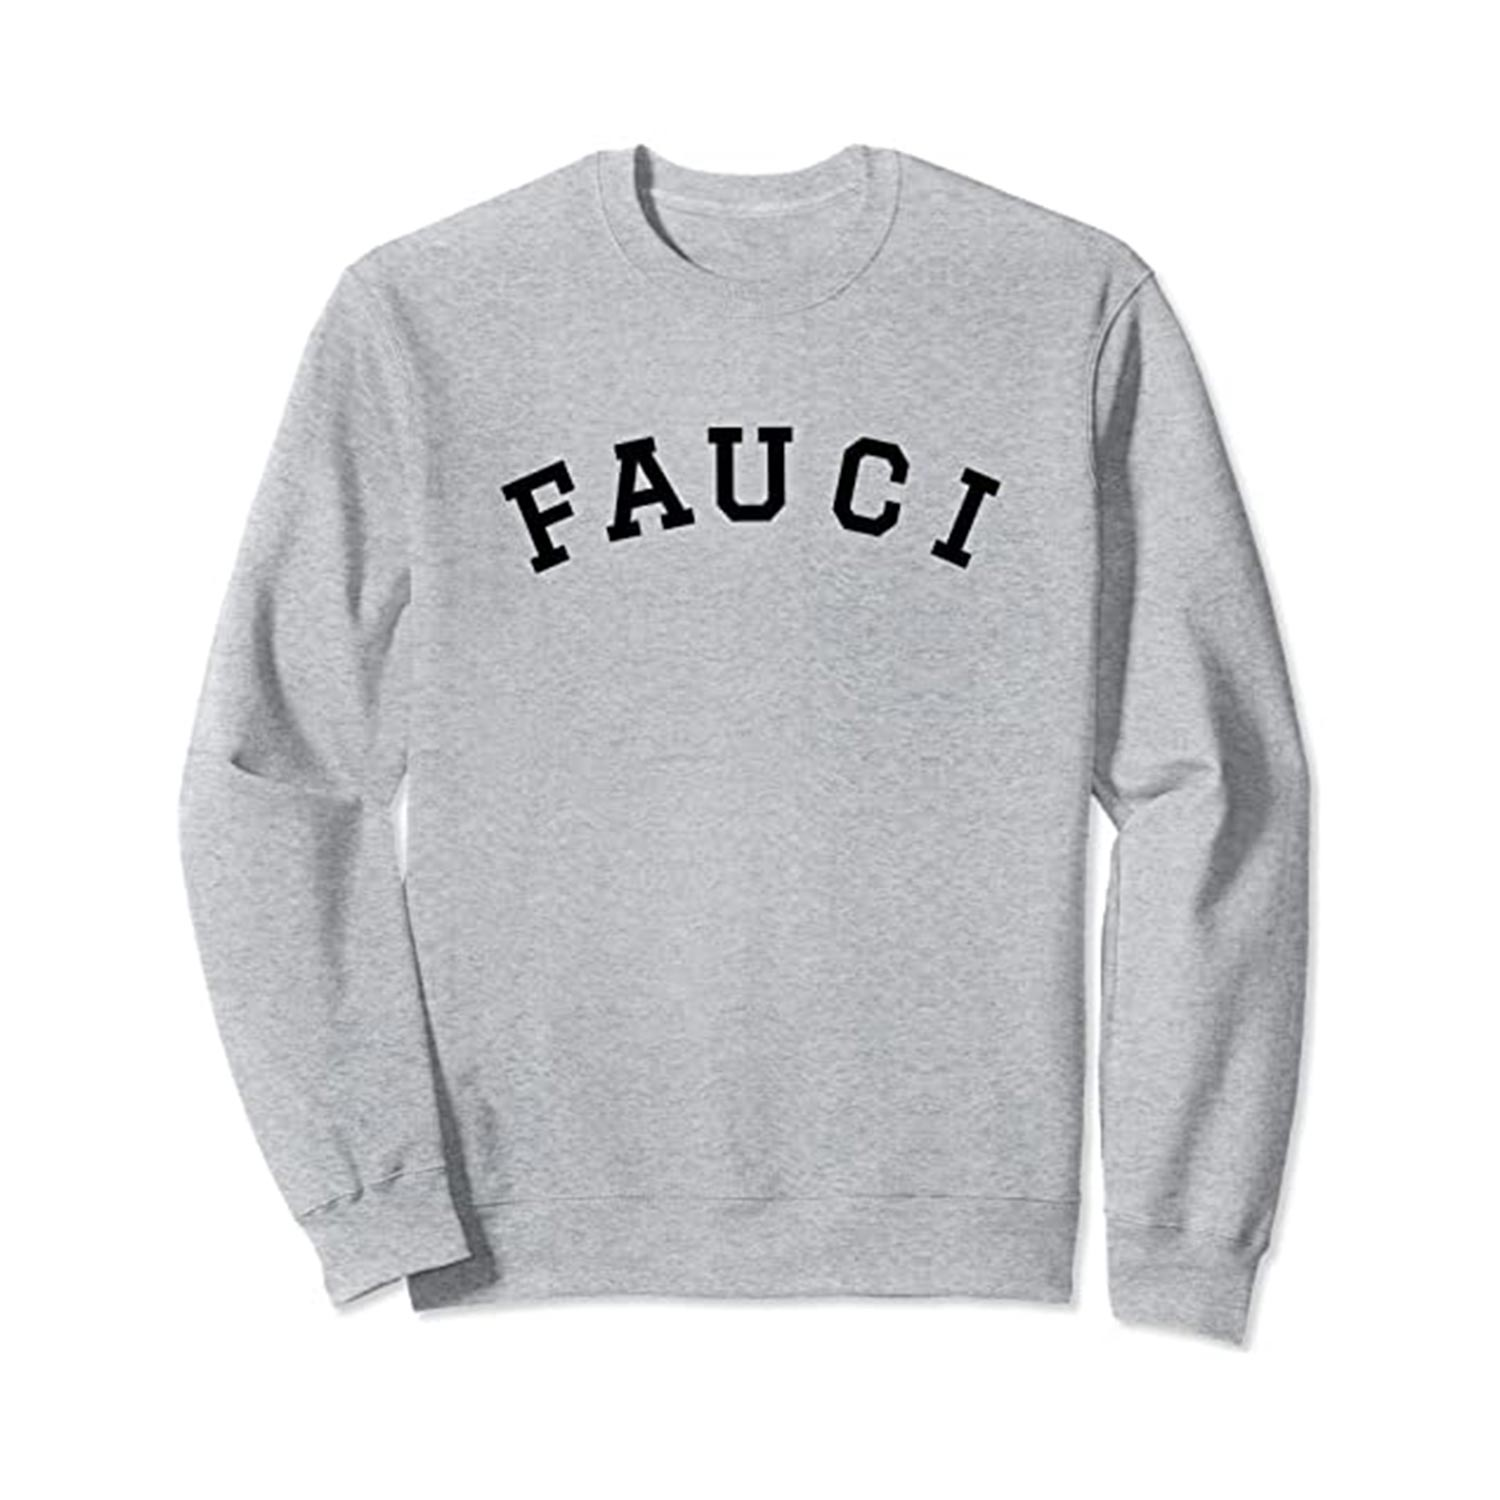 Team Fauci Dr. Anthony Fauci Sweater